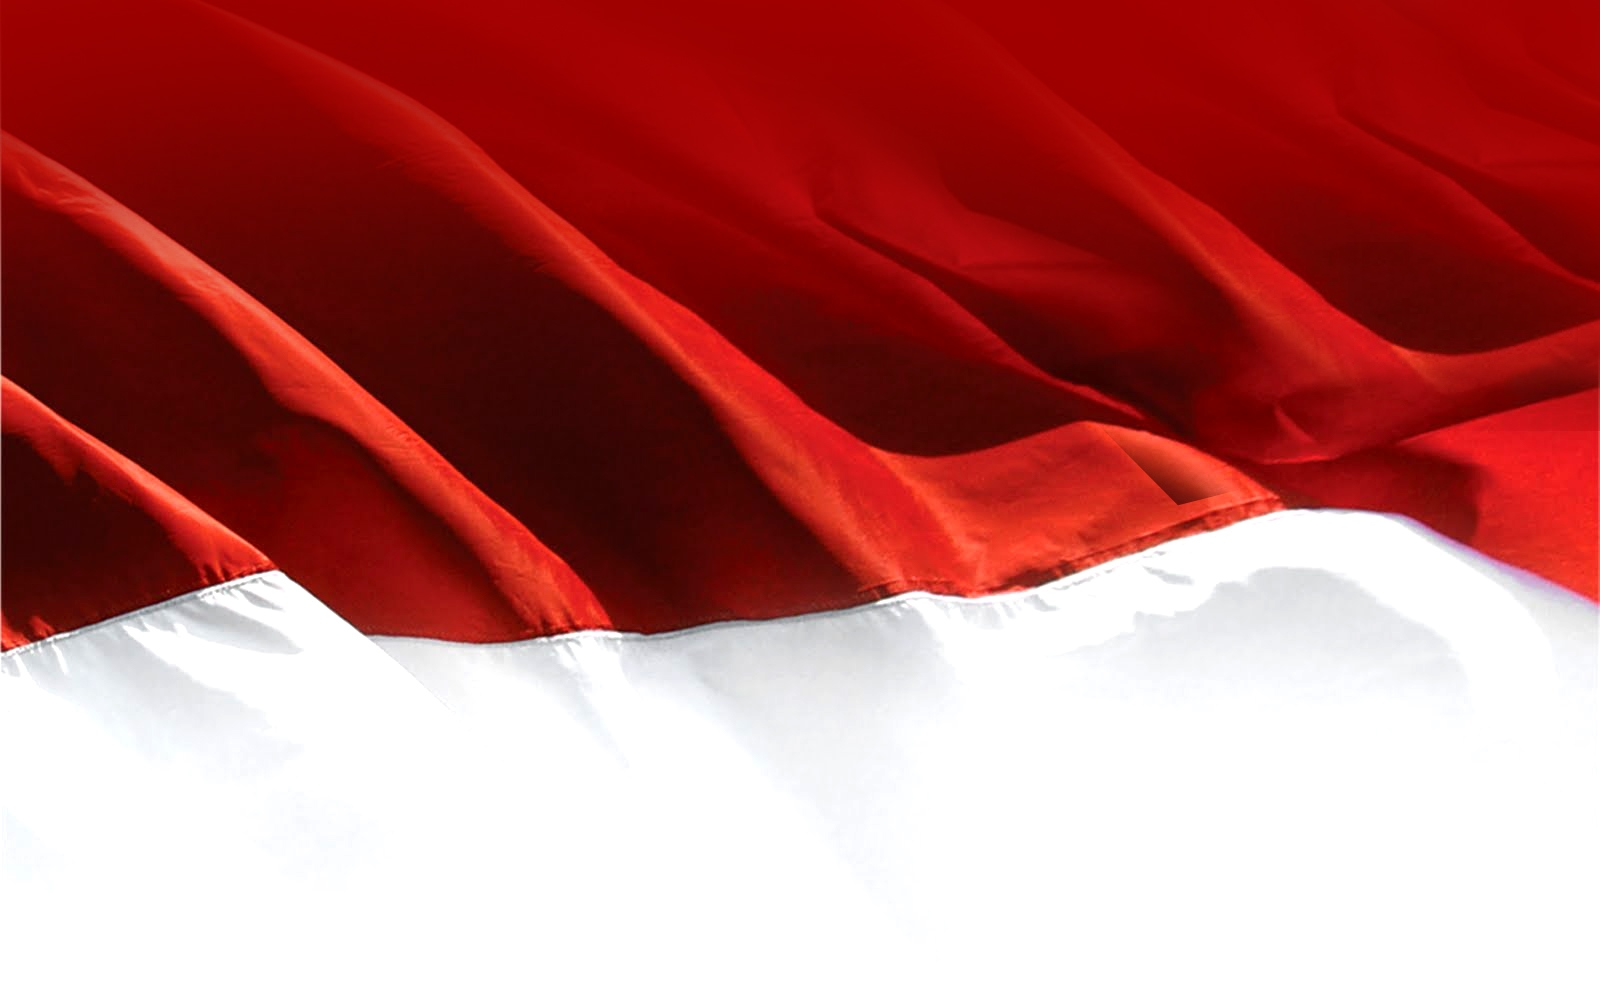 free download wallpaper bendera merah putih bendera merah putih background png 743111 hd wallpaper backgrounds download bendera merah putih background png